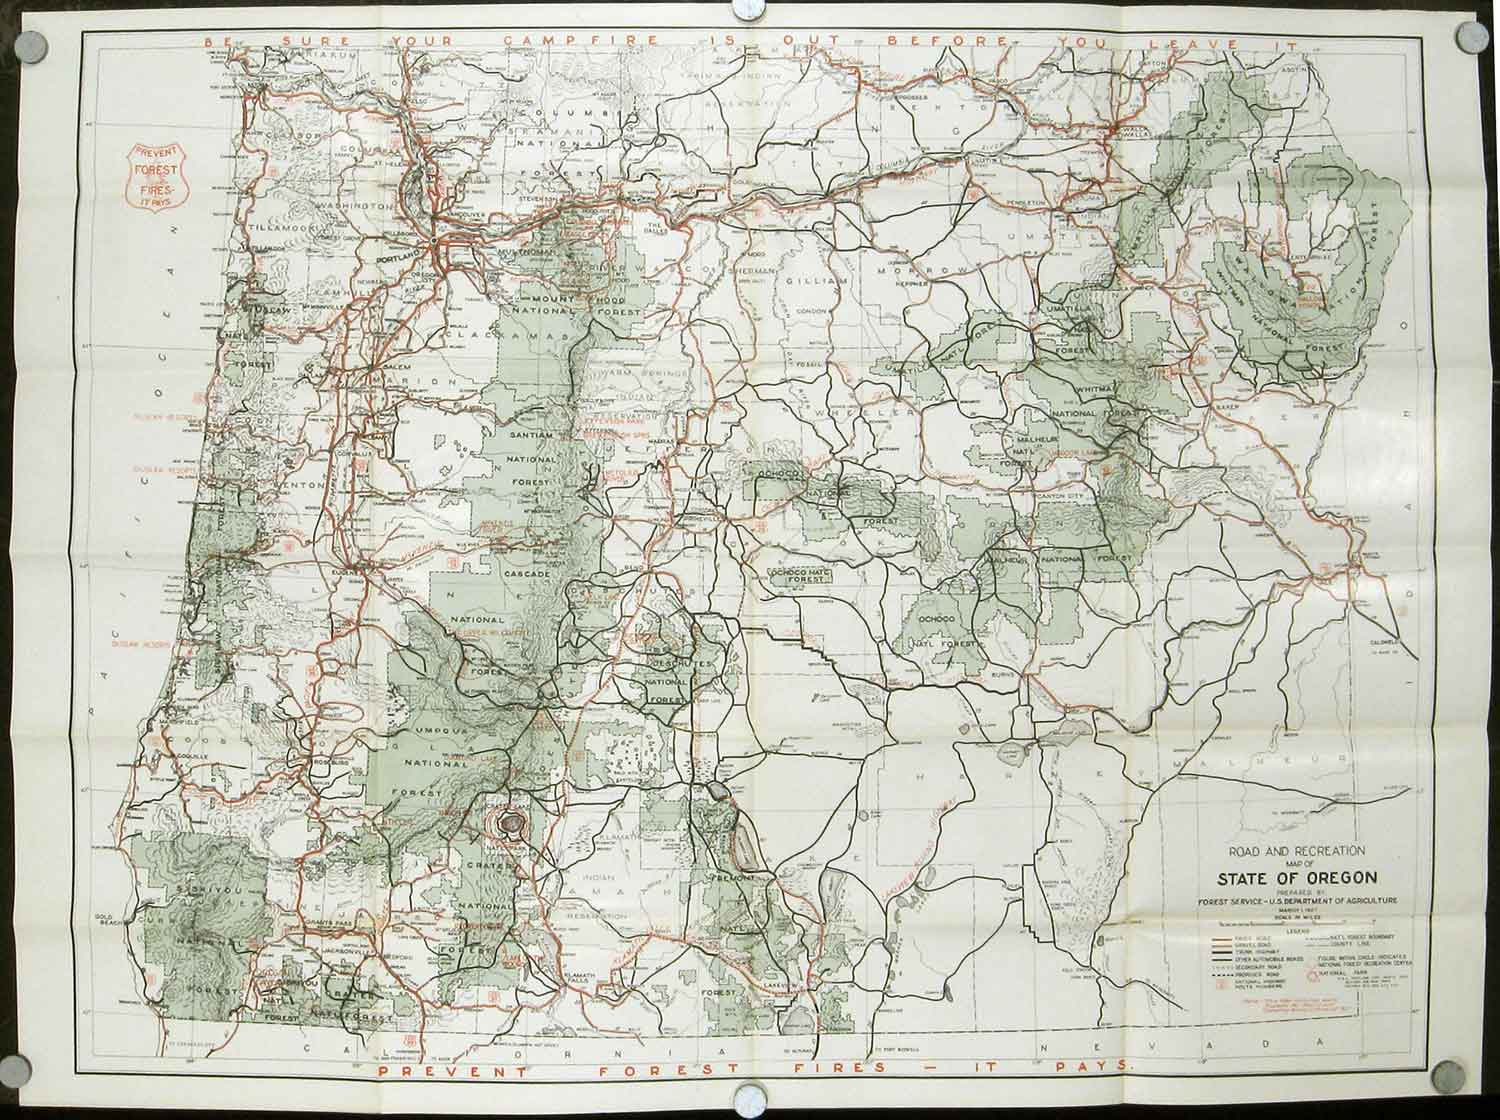 Road and Information Map for the National Forests of Oregon US